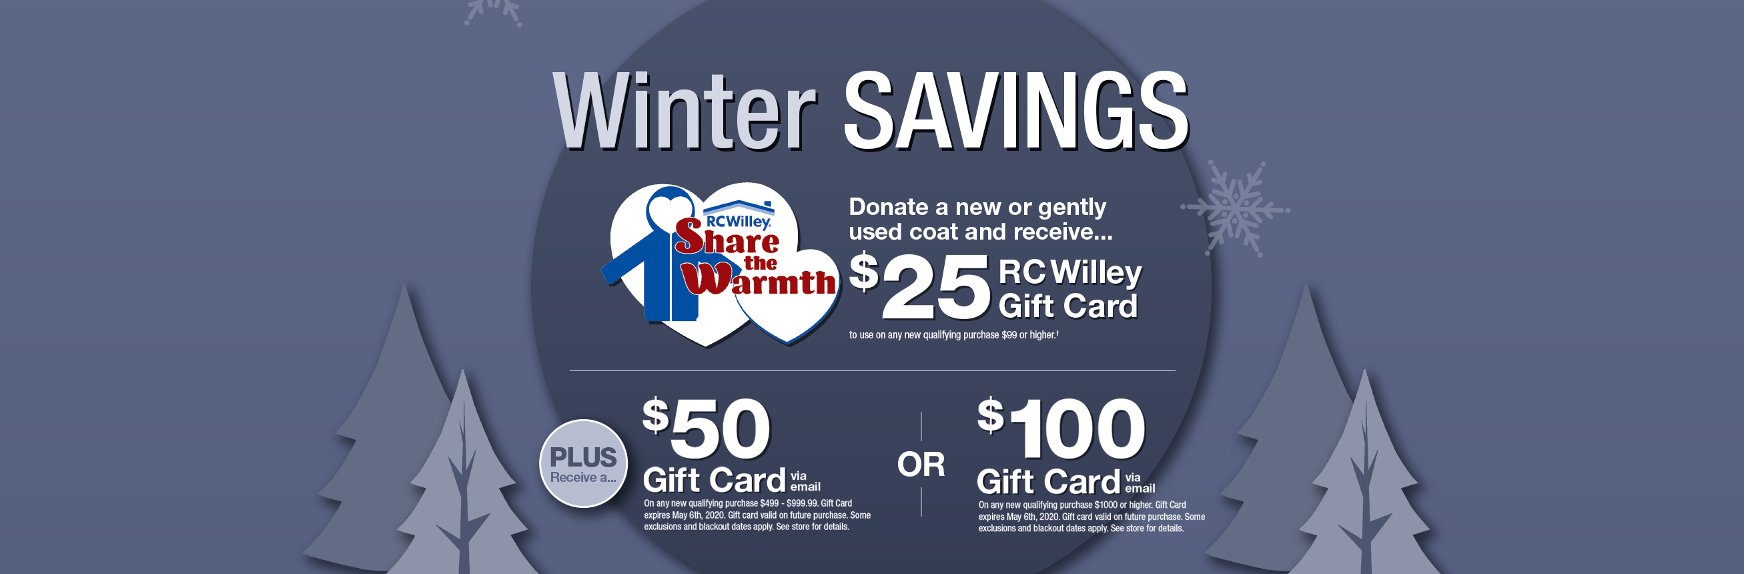 hero0120_Winter_Savings